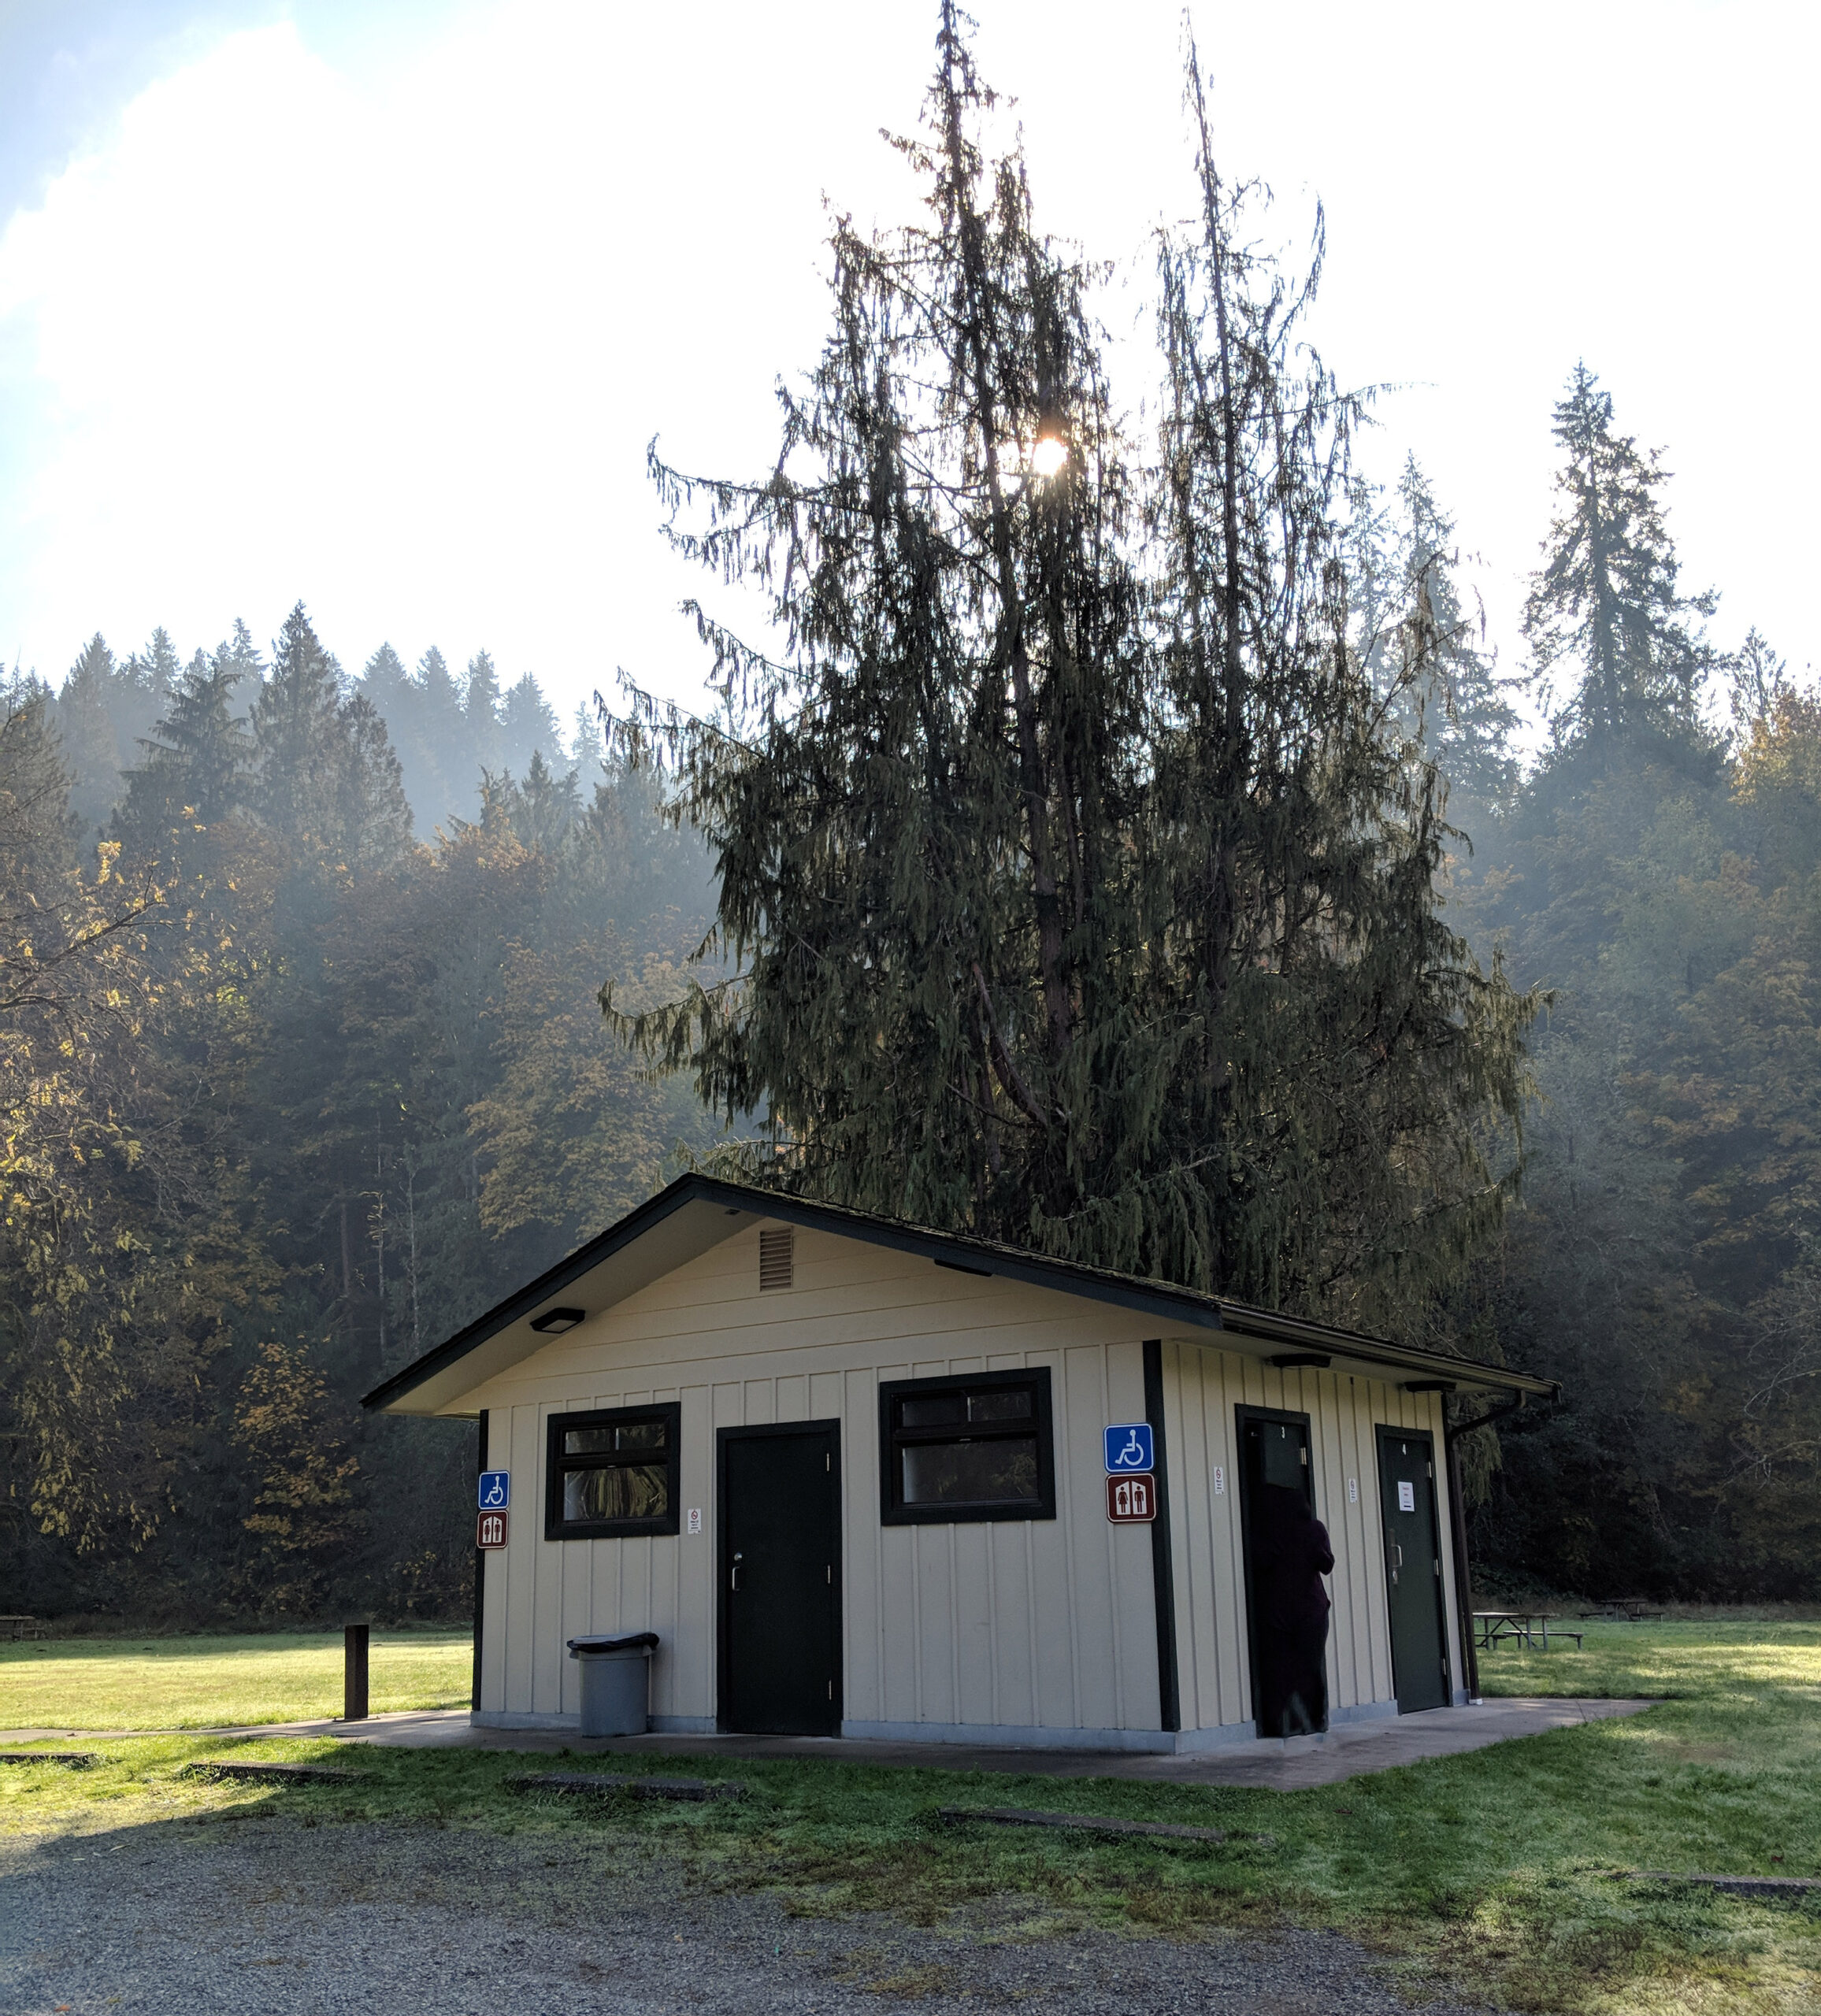 The restroom facilities at flaming geysers state park.